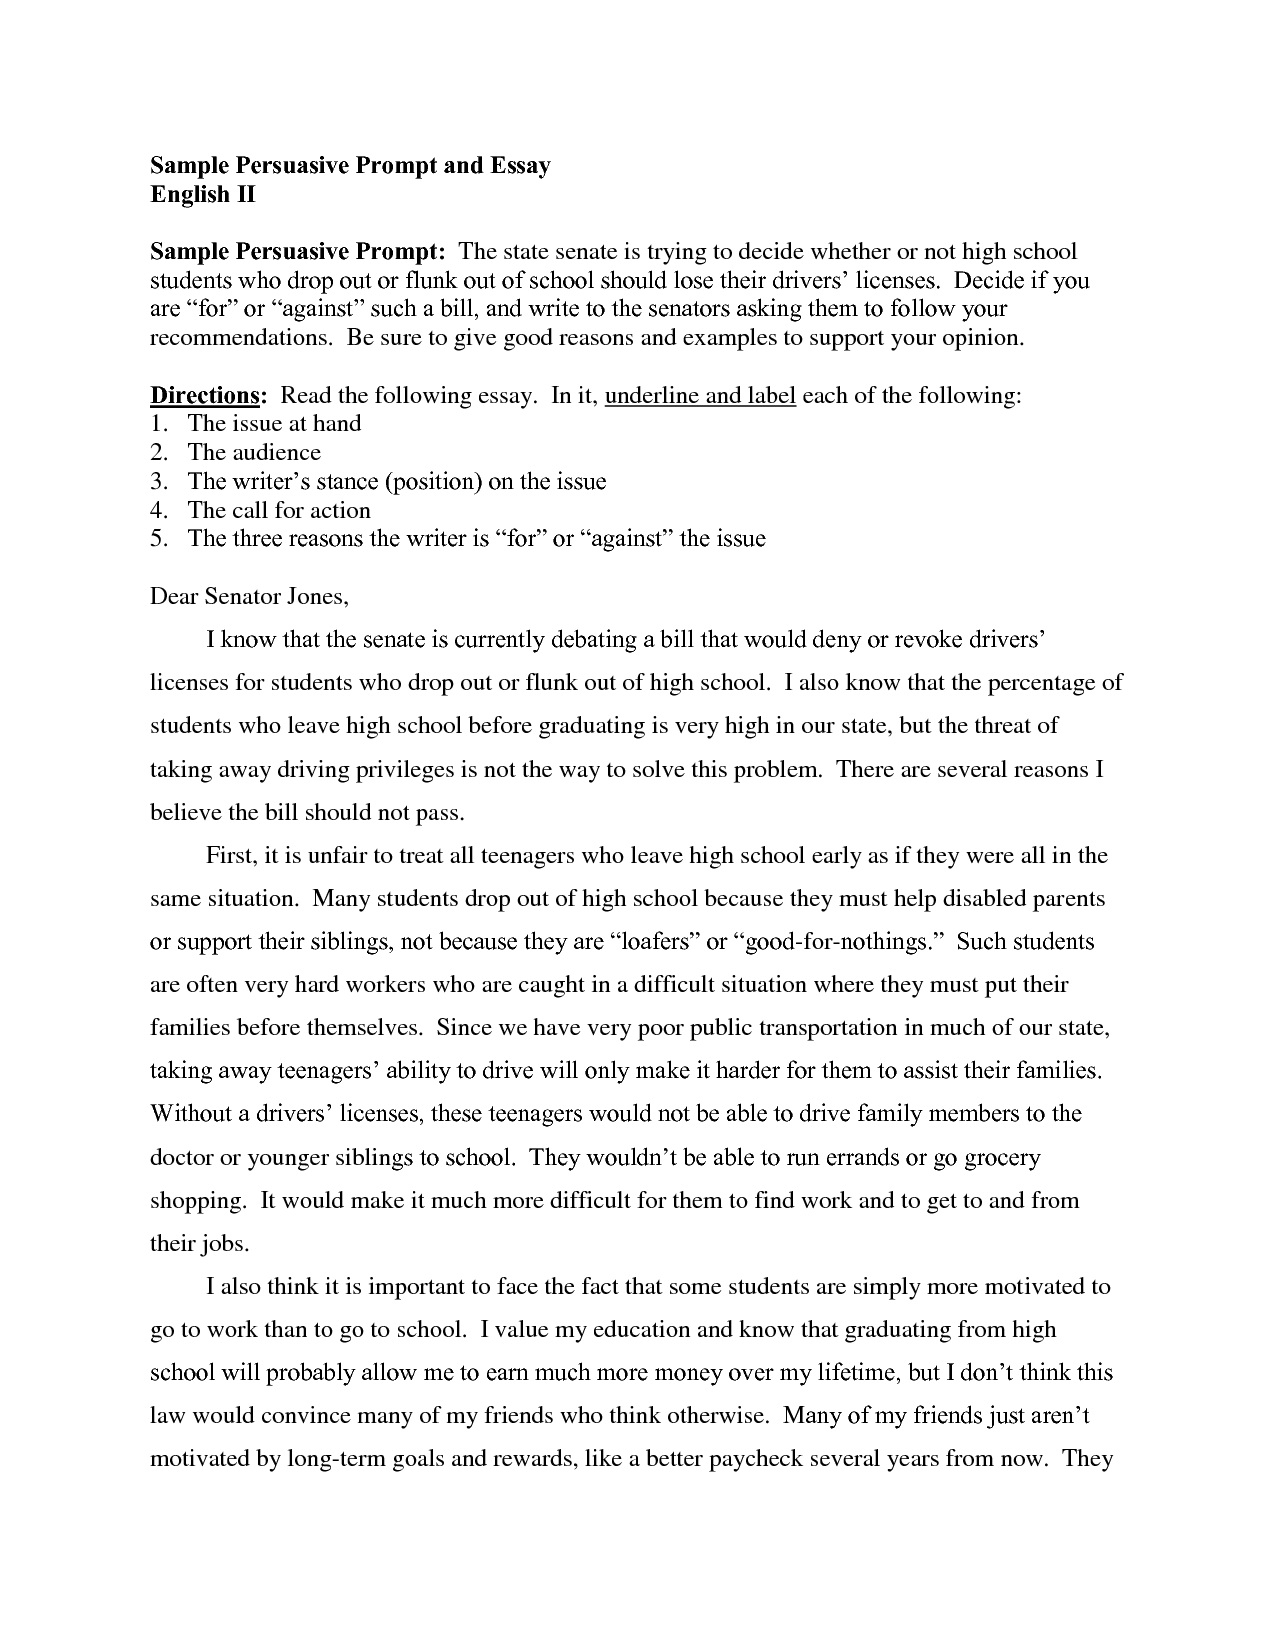 021 Research Paper Samples Of Persuasive Essays For High School Students Demire Argumentative Essay Impressive Topics Senior Qualitative Sample In The Philippines Full